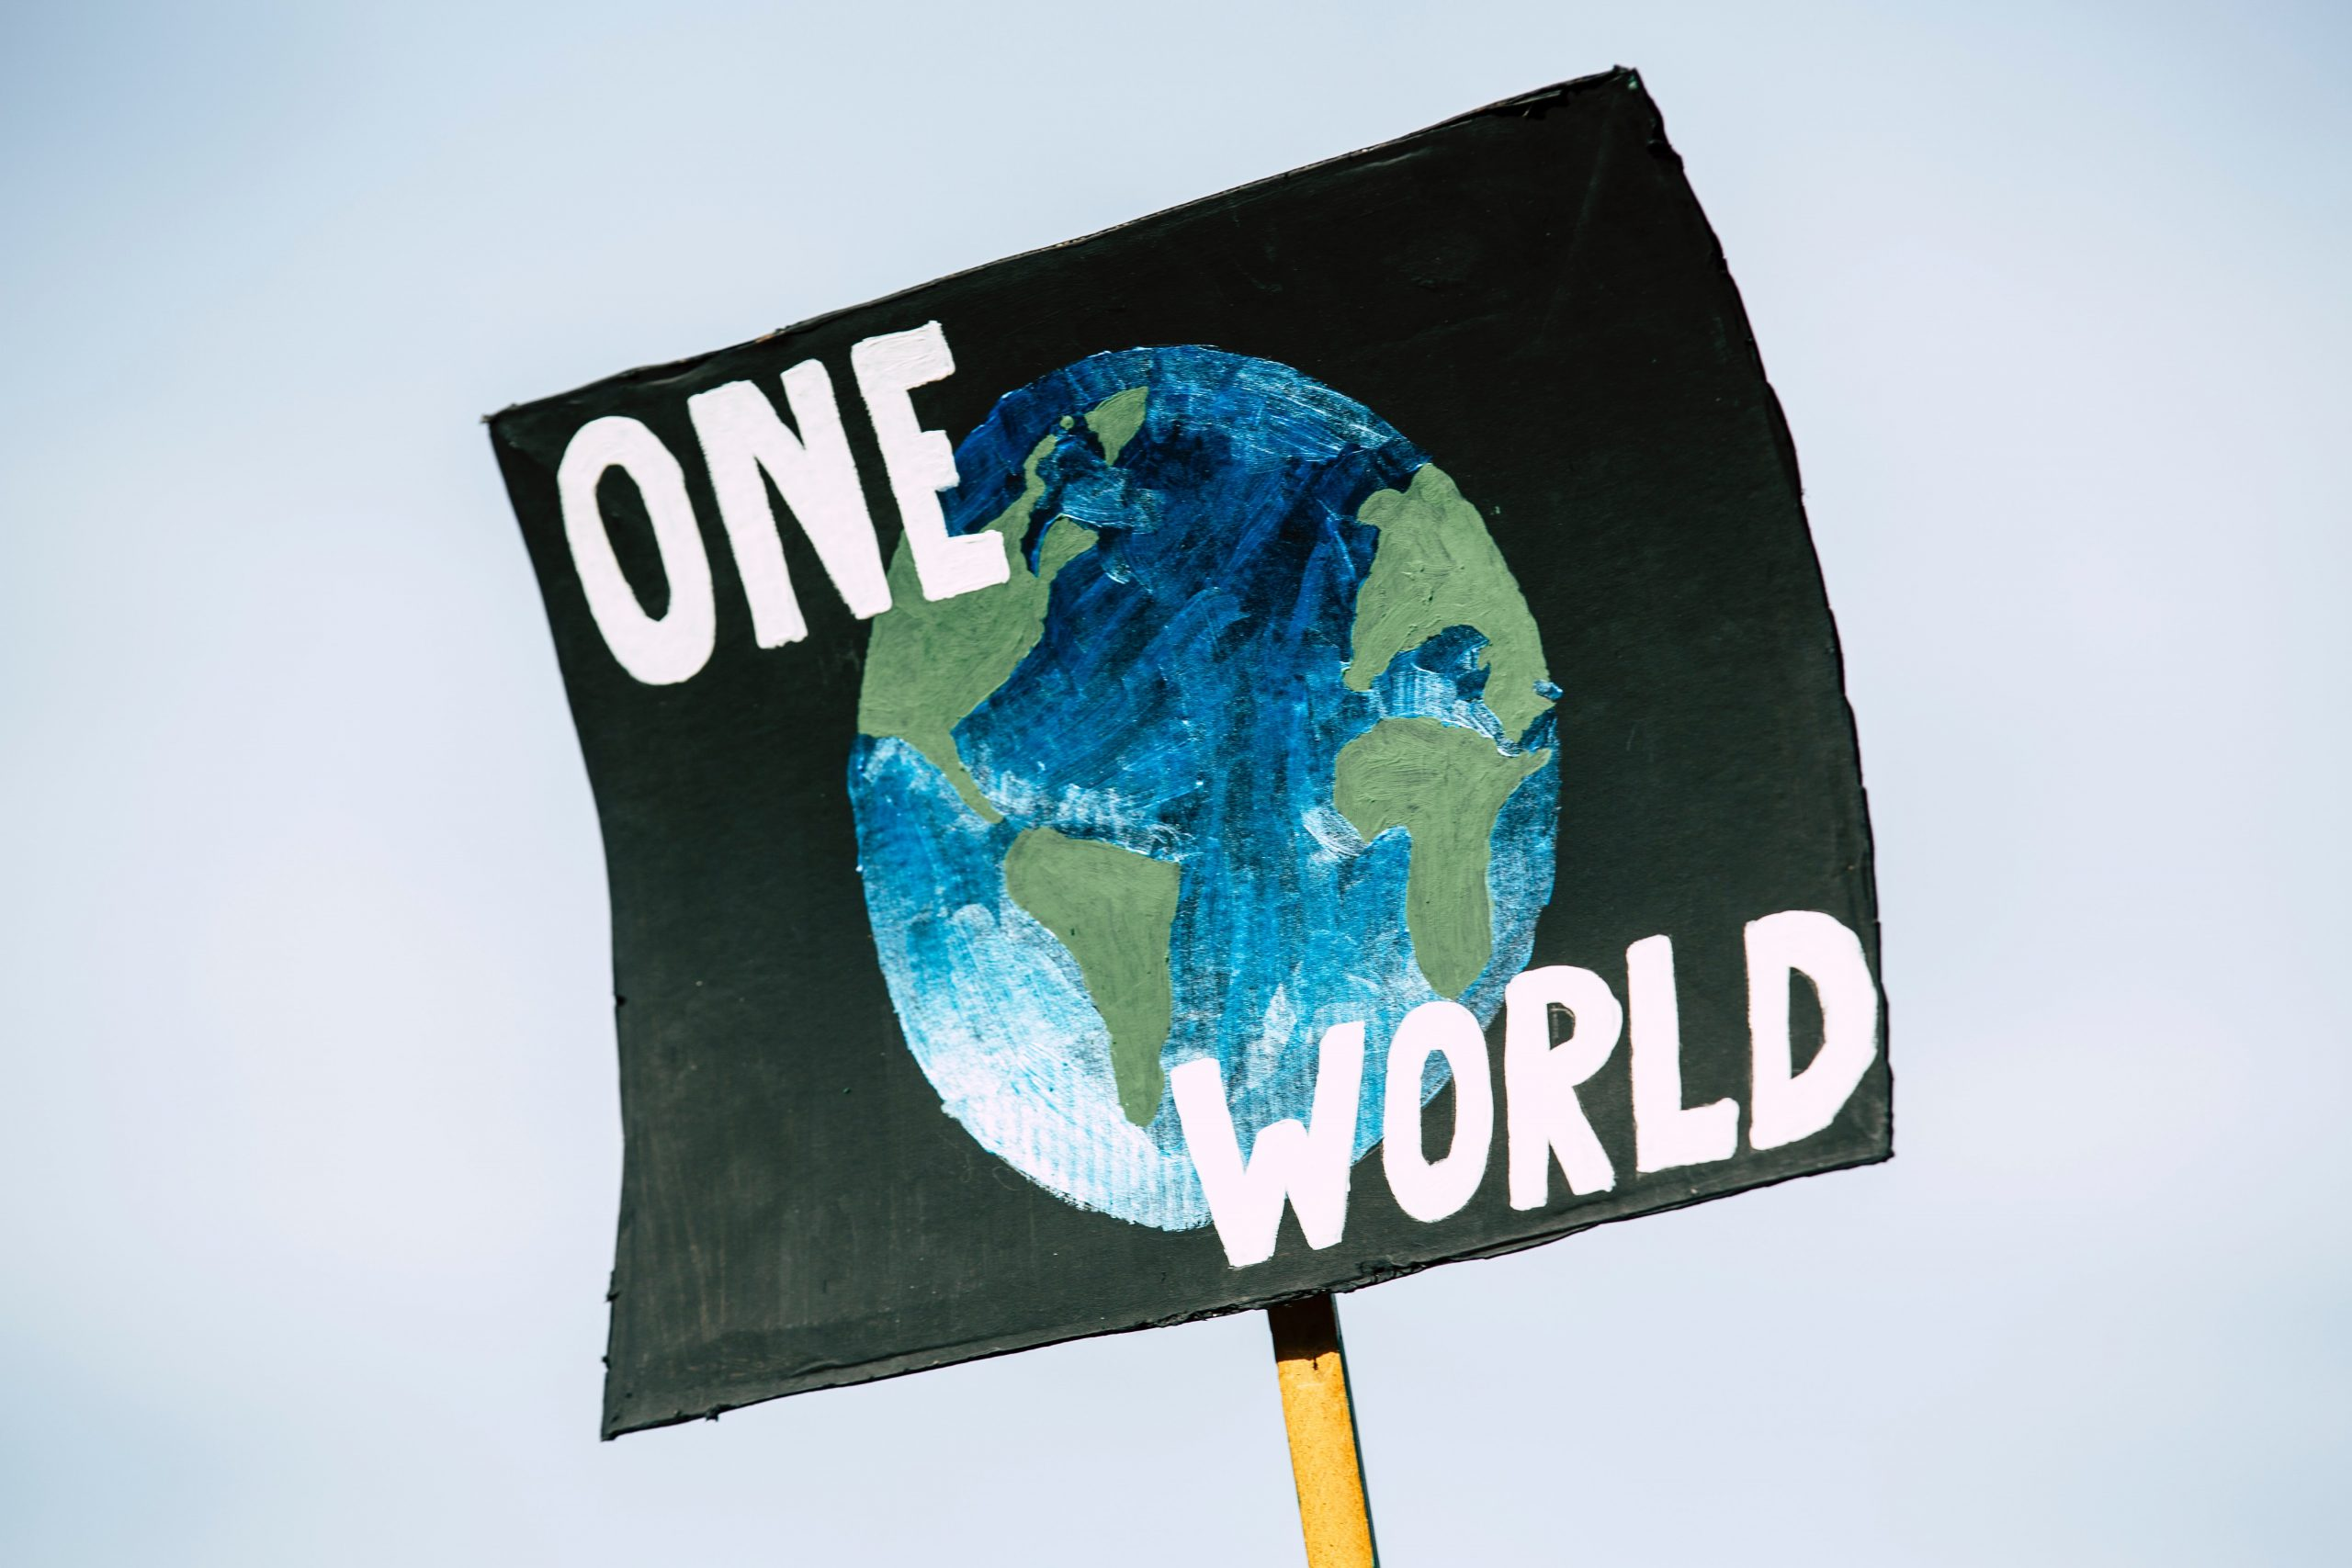 A protest sign in the air reads 'one world' in white text. The background is black and there is a blue and green drawing of the globe.